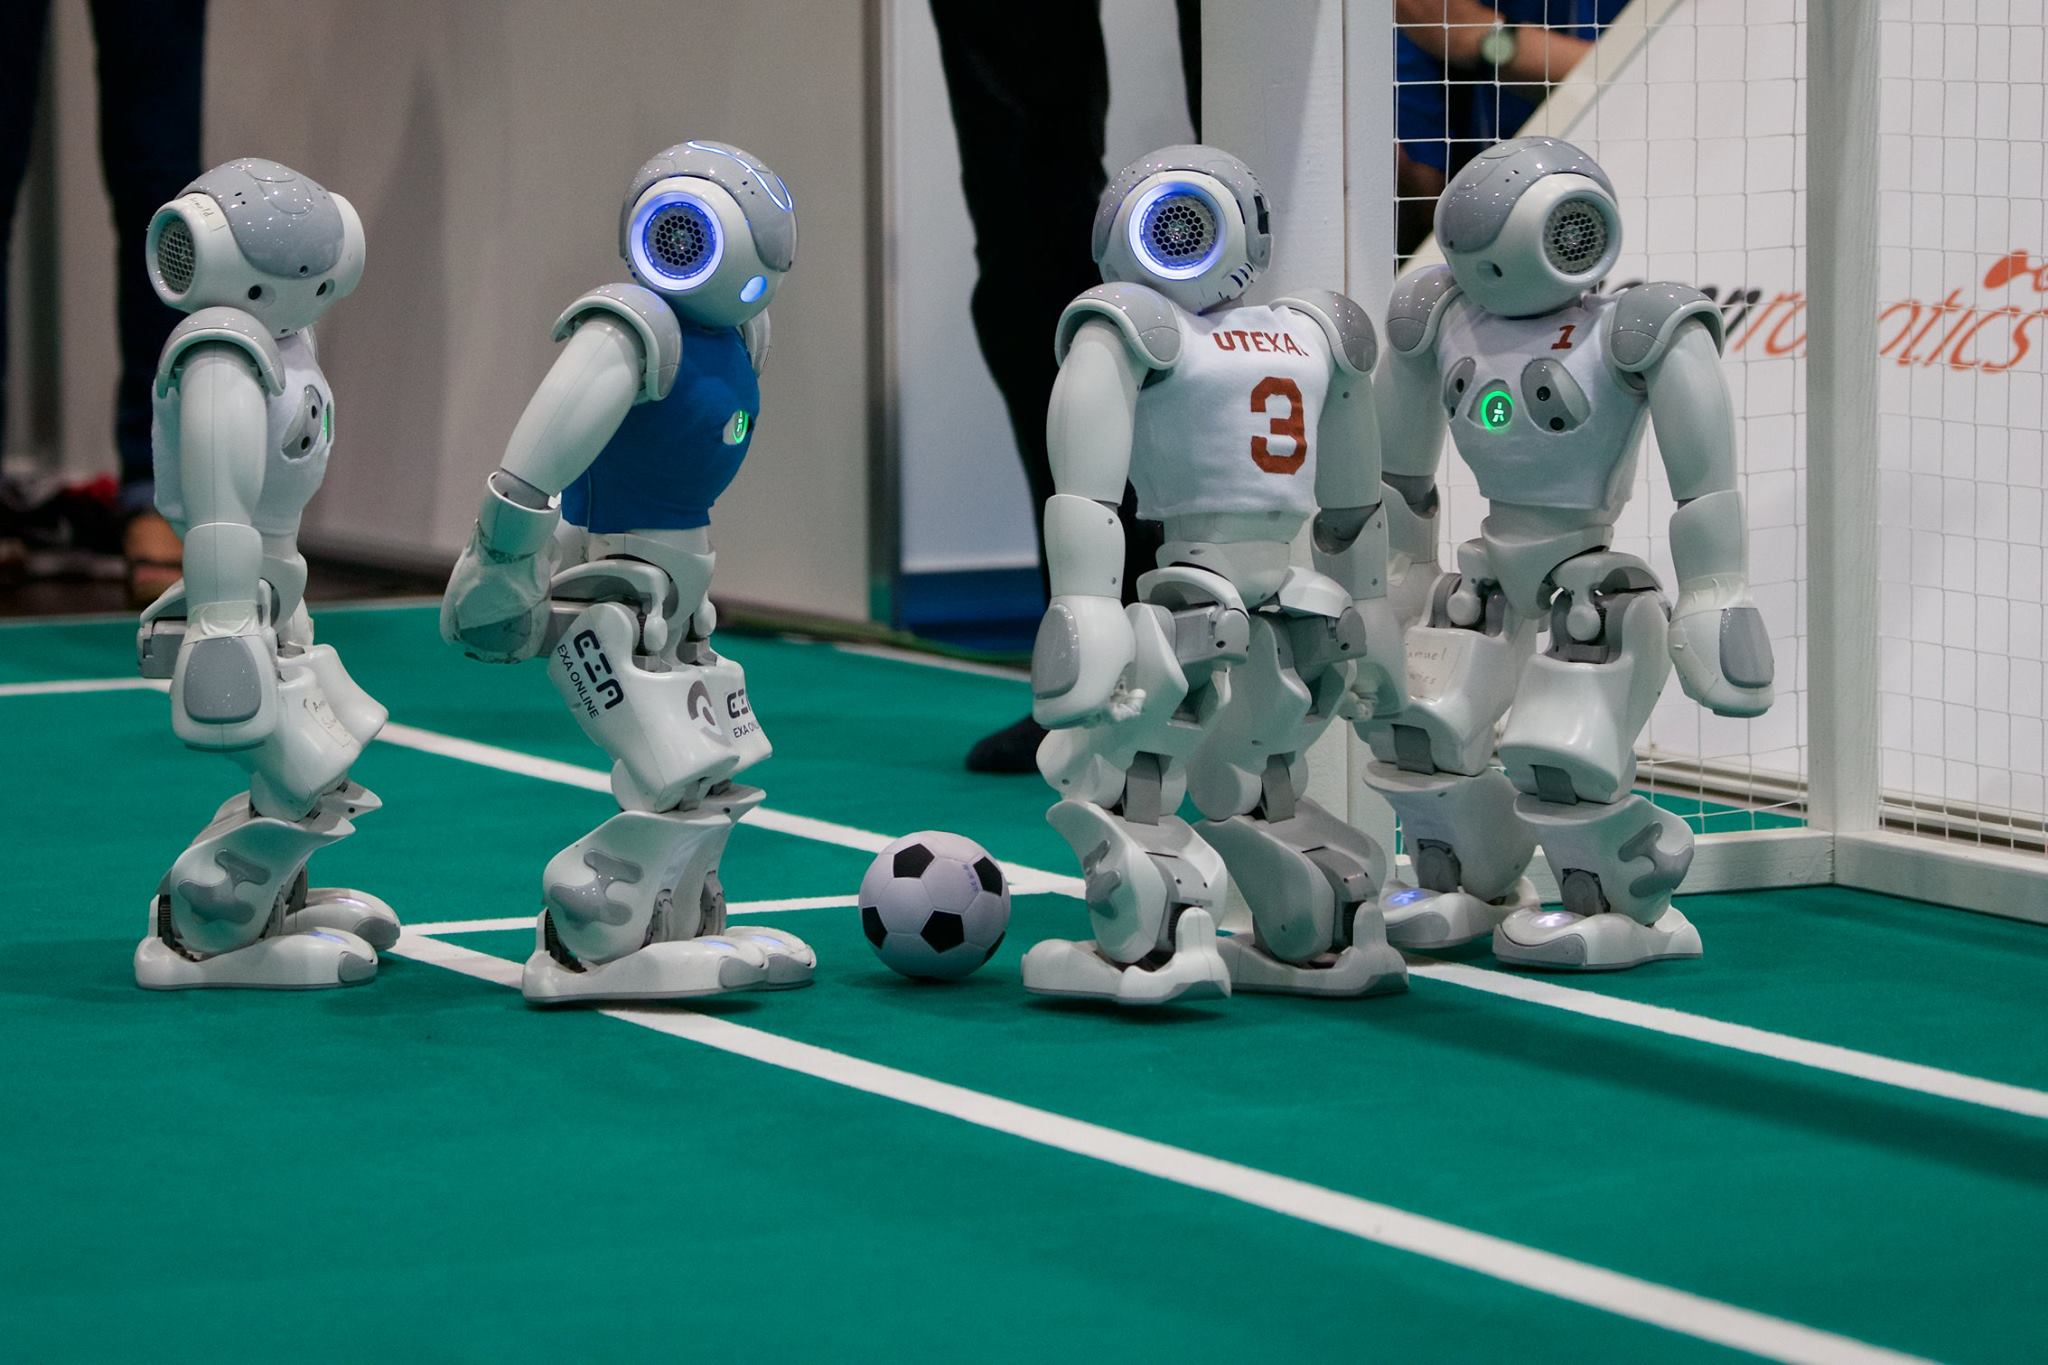 Could Robots Compete in the 2050 World Cup? This UT Team Thinks It's Possible